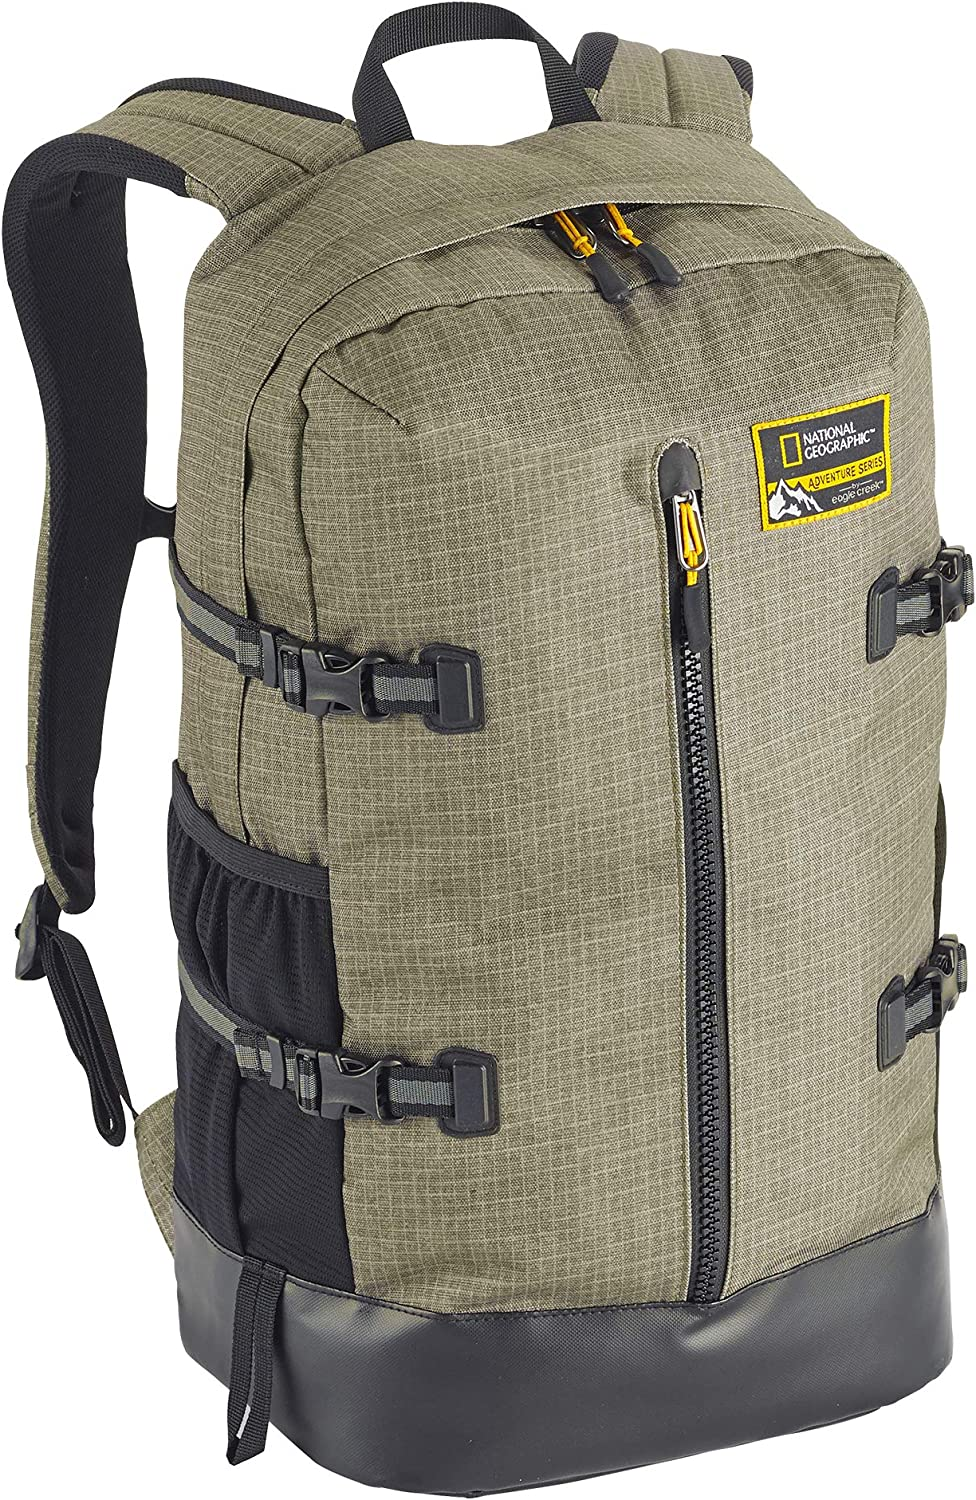 Eagle Creek National Geographic Adventure Backpack 30l